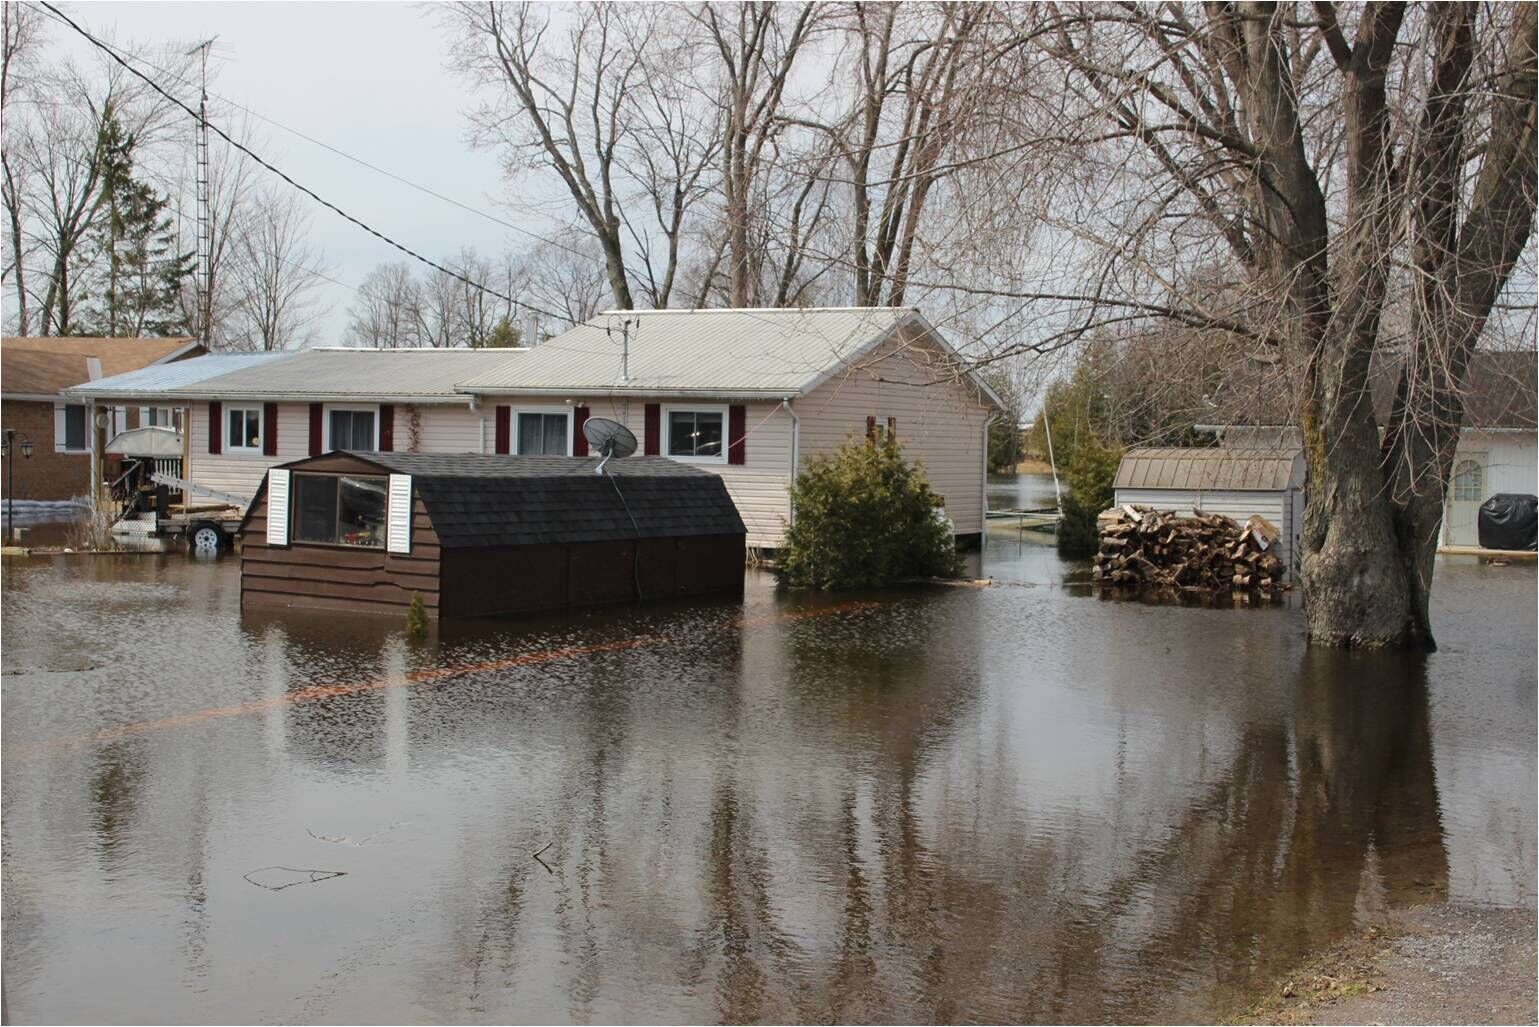 Protecting People & Property from Flooding